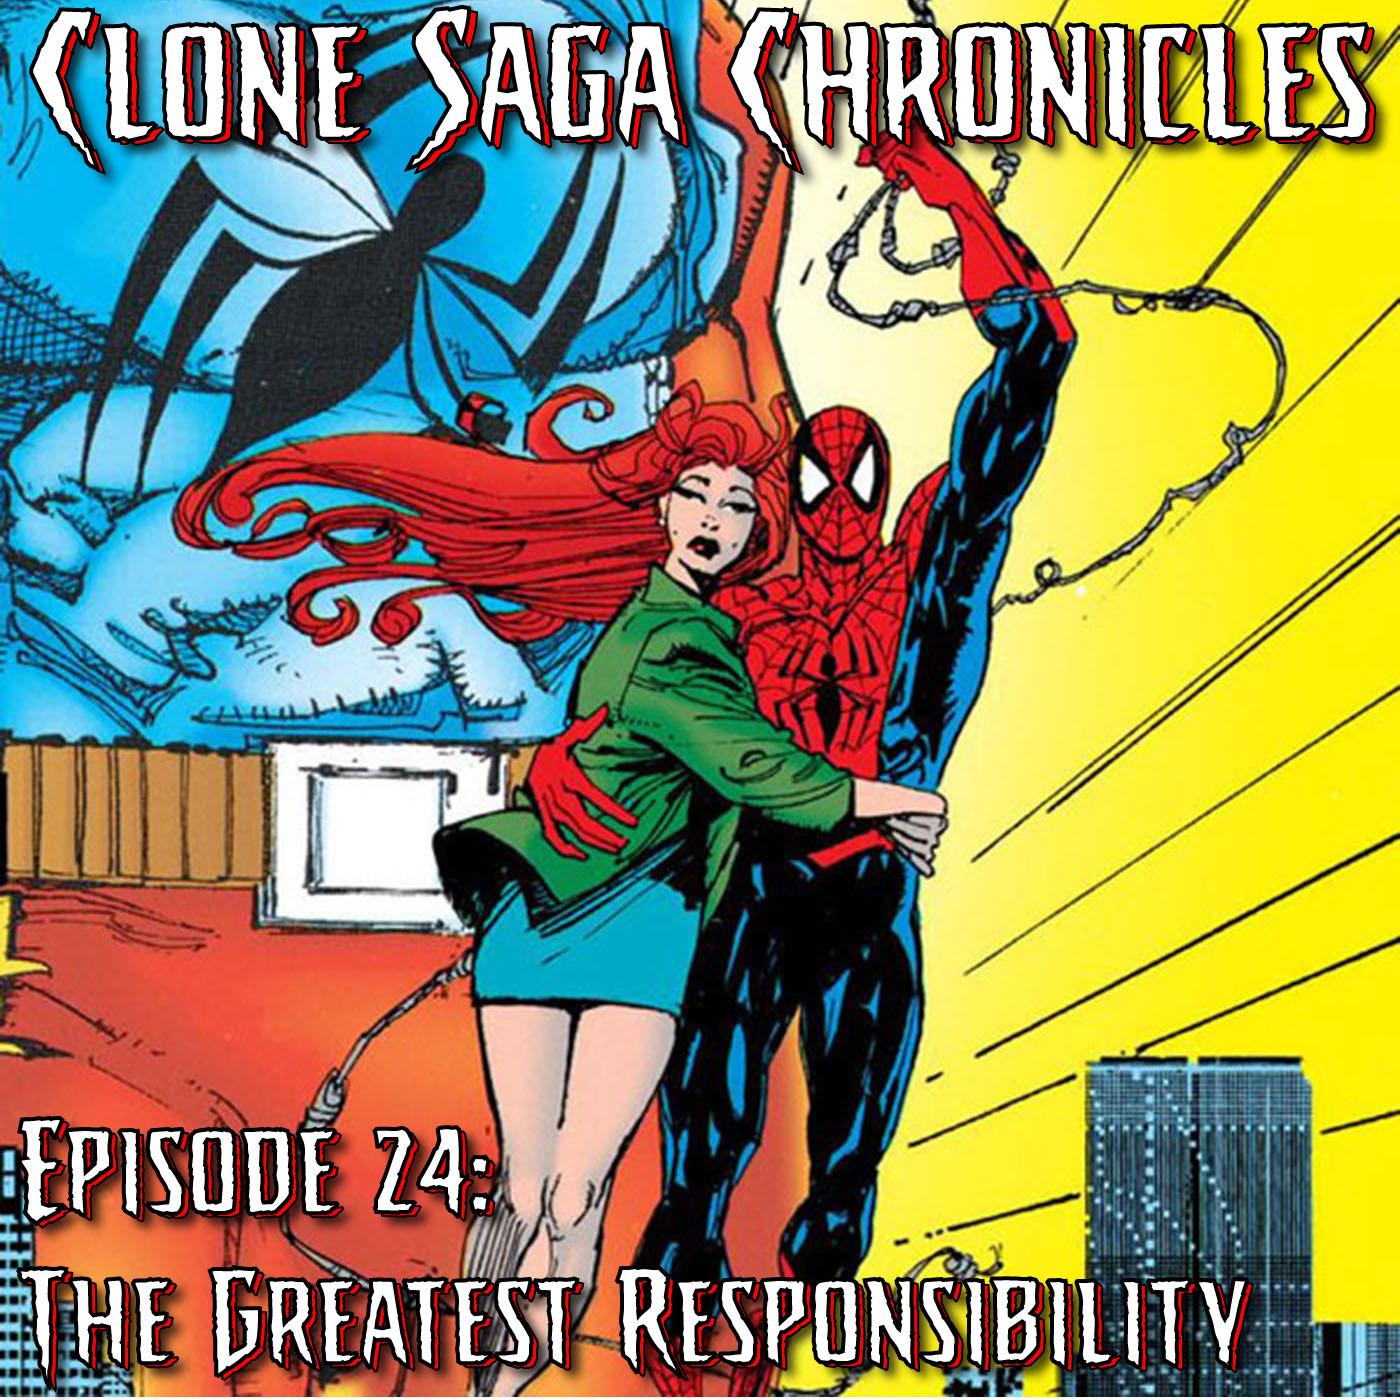 CSC Episode 24: The Greatest Responsibility (Oct 1995)